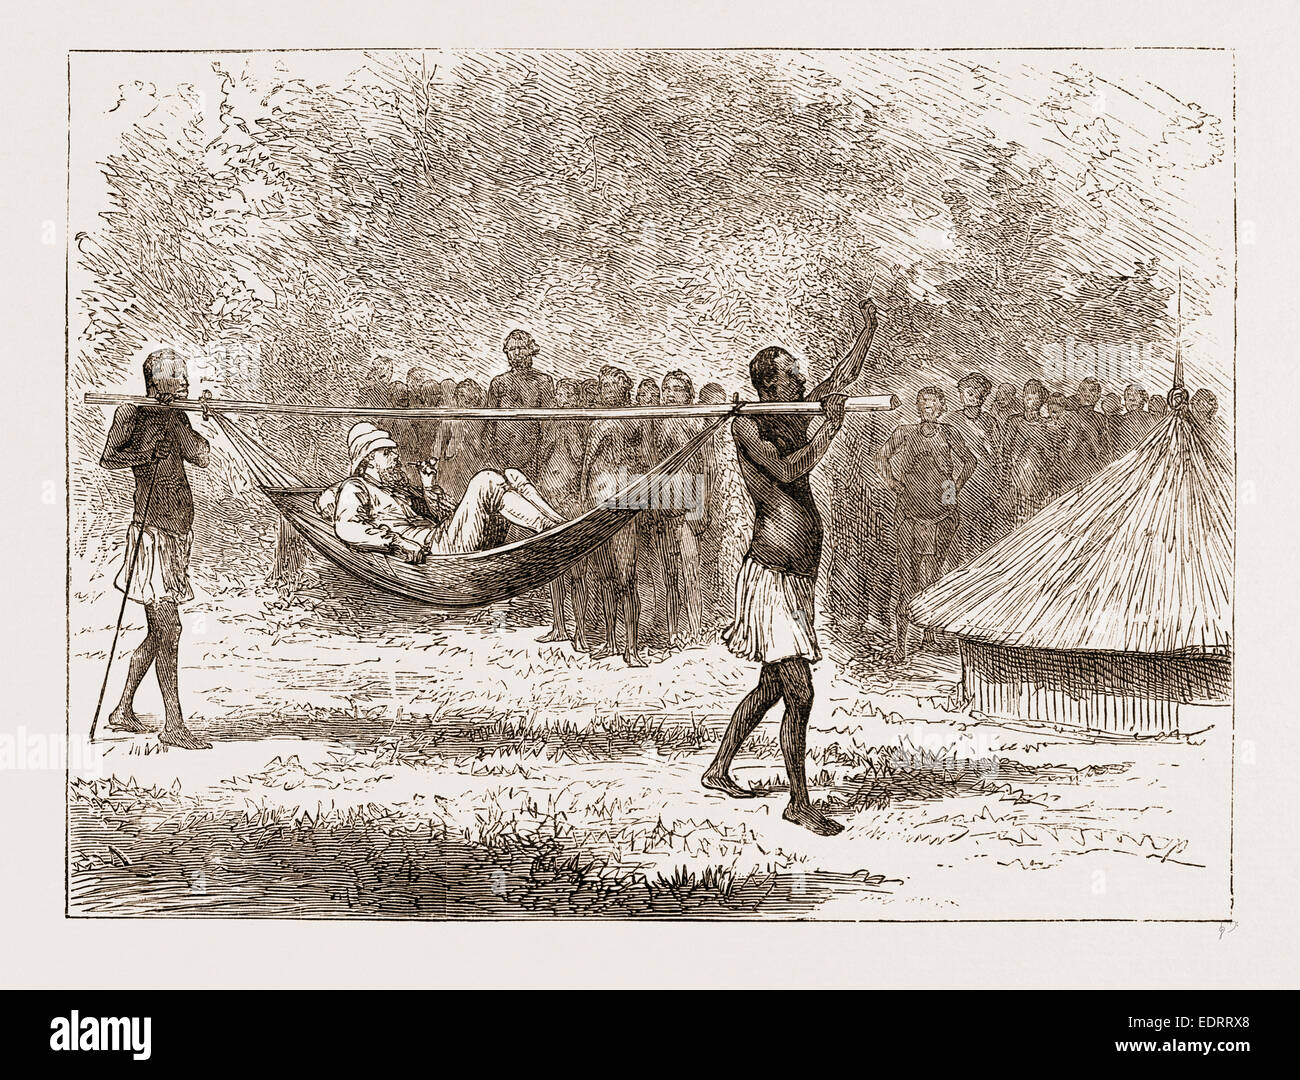 A LAME DAY, AFRICA, 1876 - Stock Image